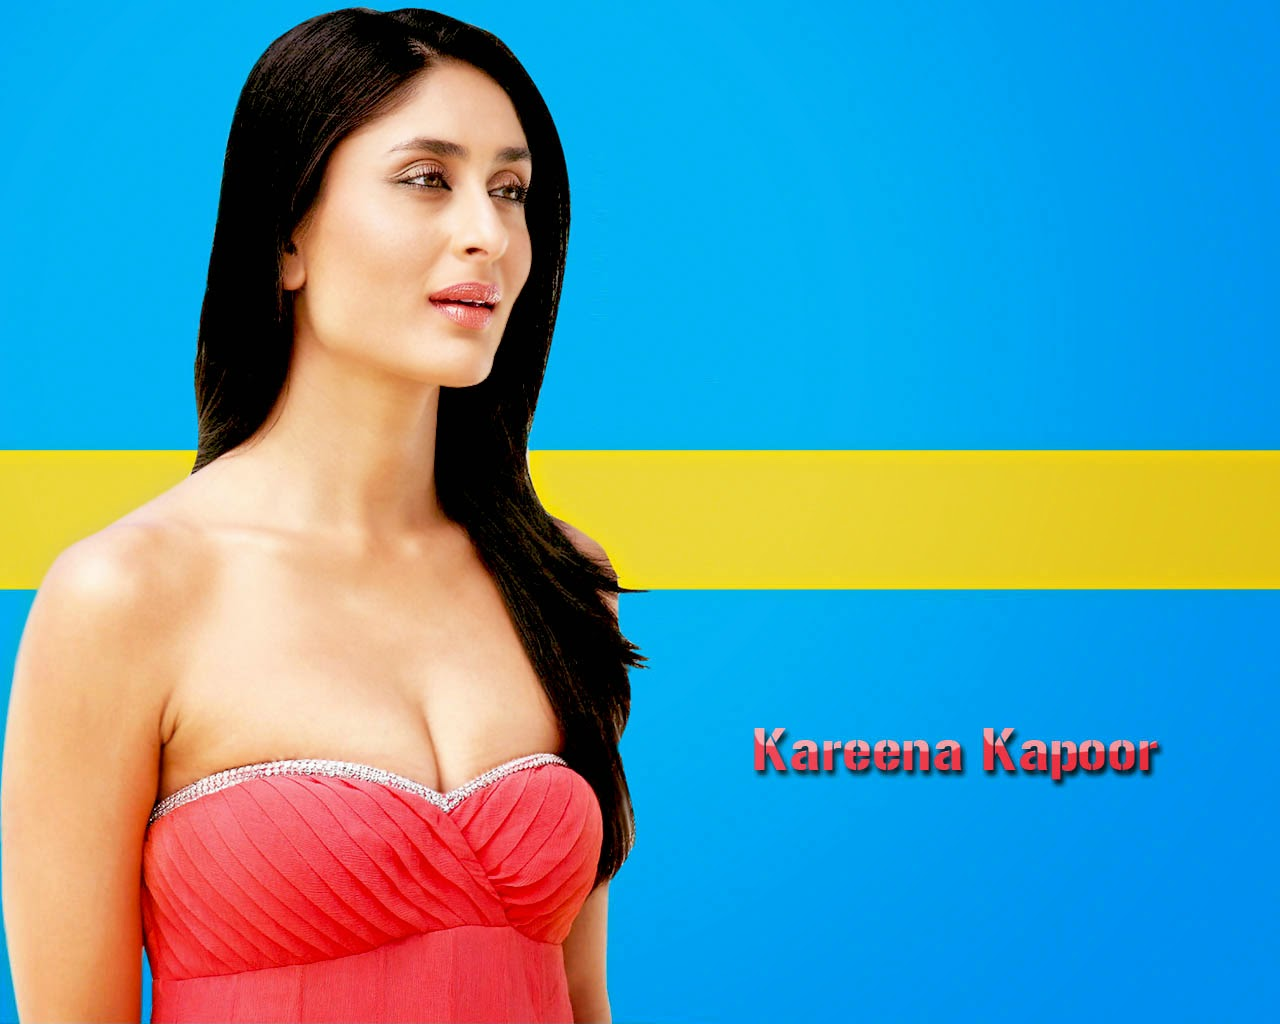 Collection Of Bollywood Hot Hd Wallpapers On Hdwallpapers - Karena Kapoor Hot Sex - HD Wallpaper